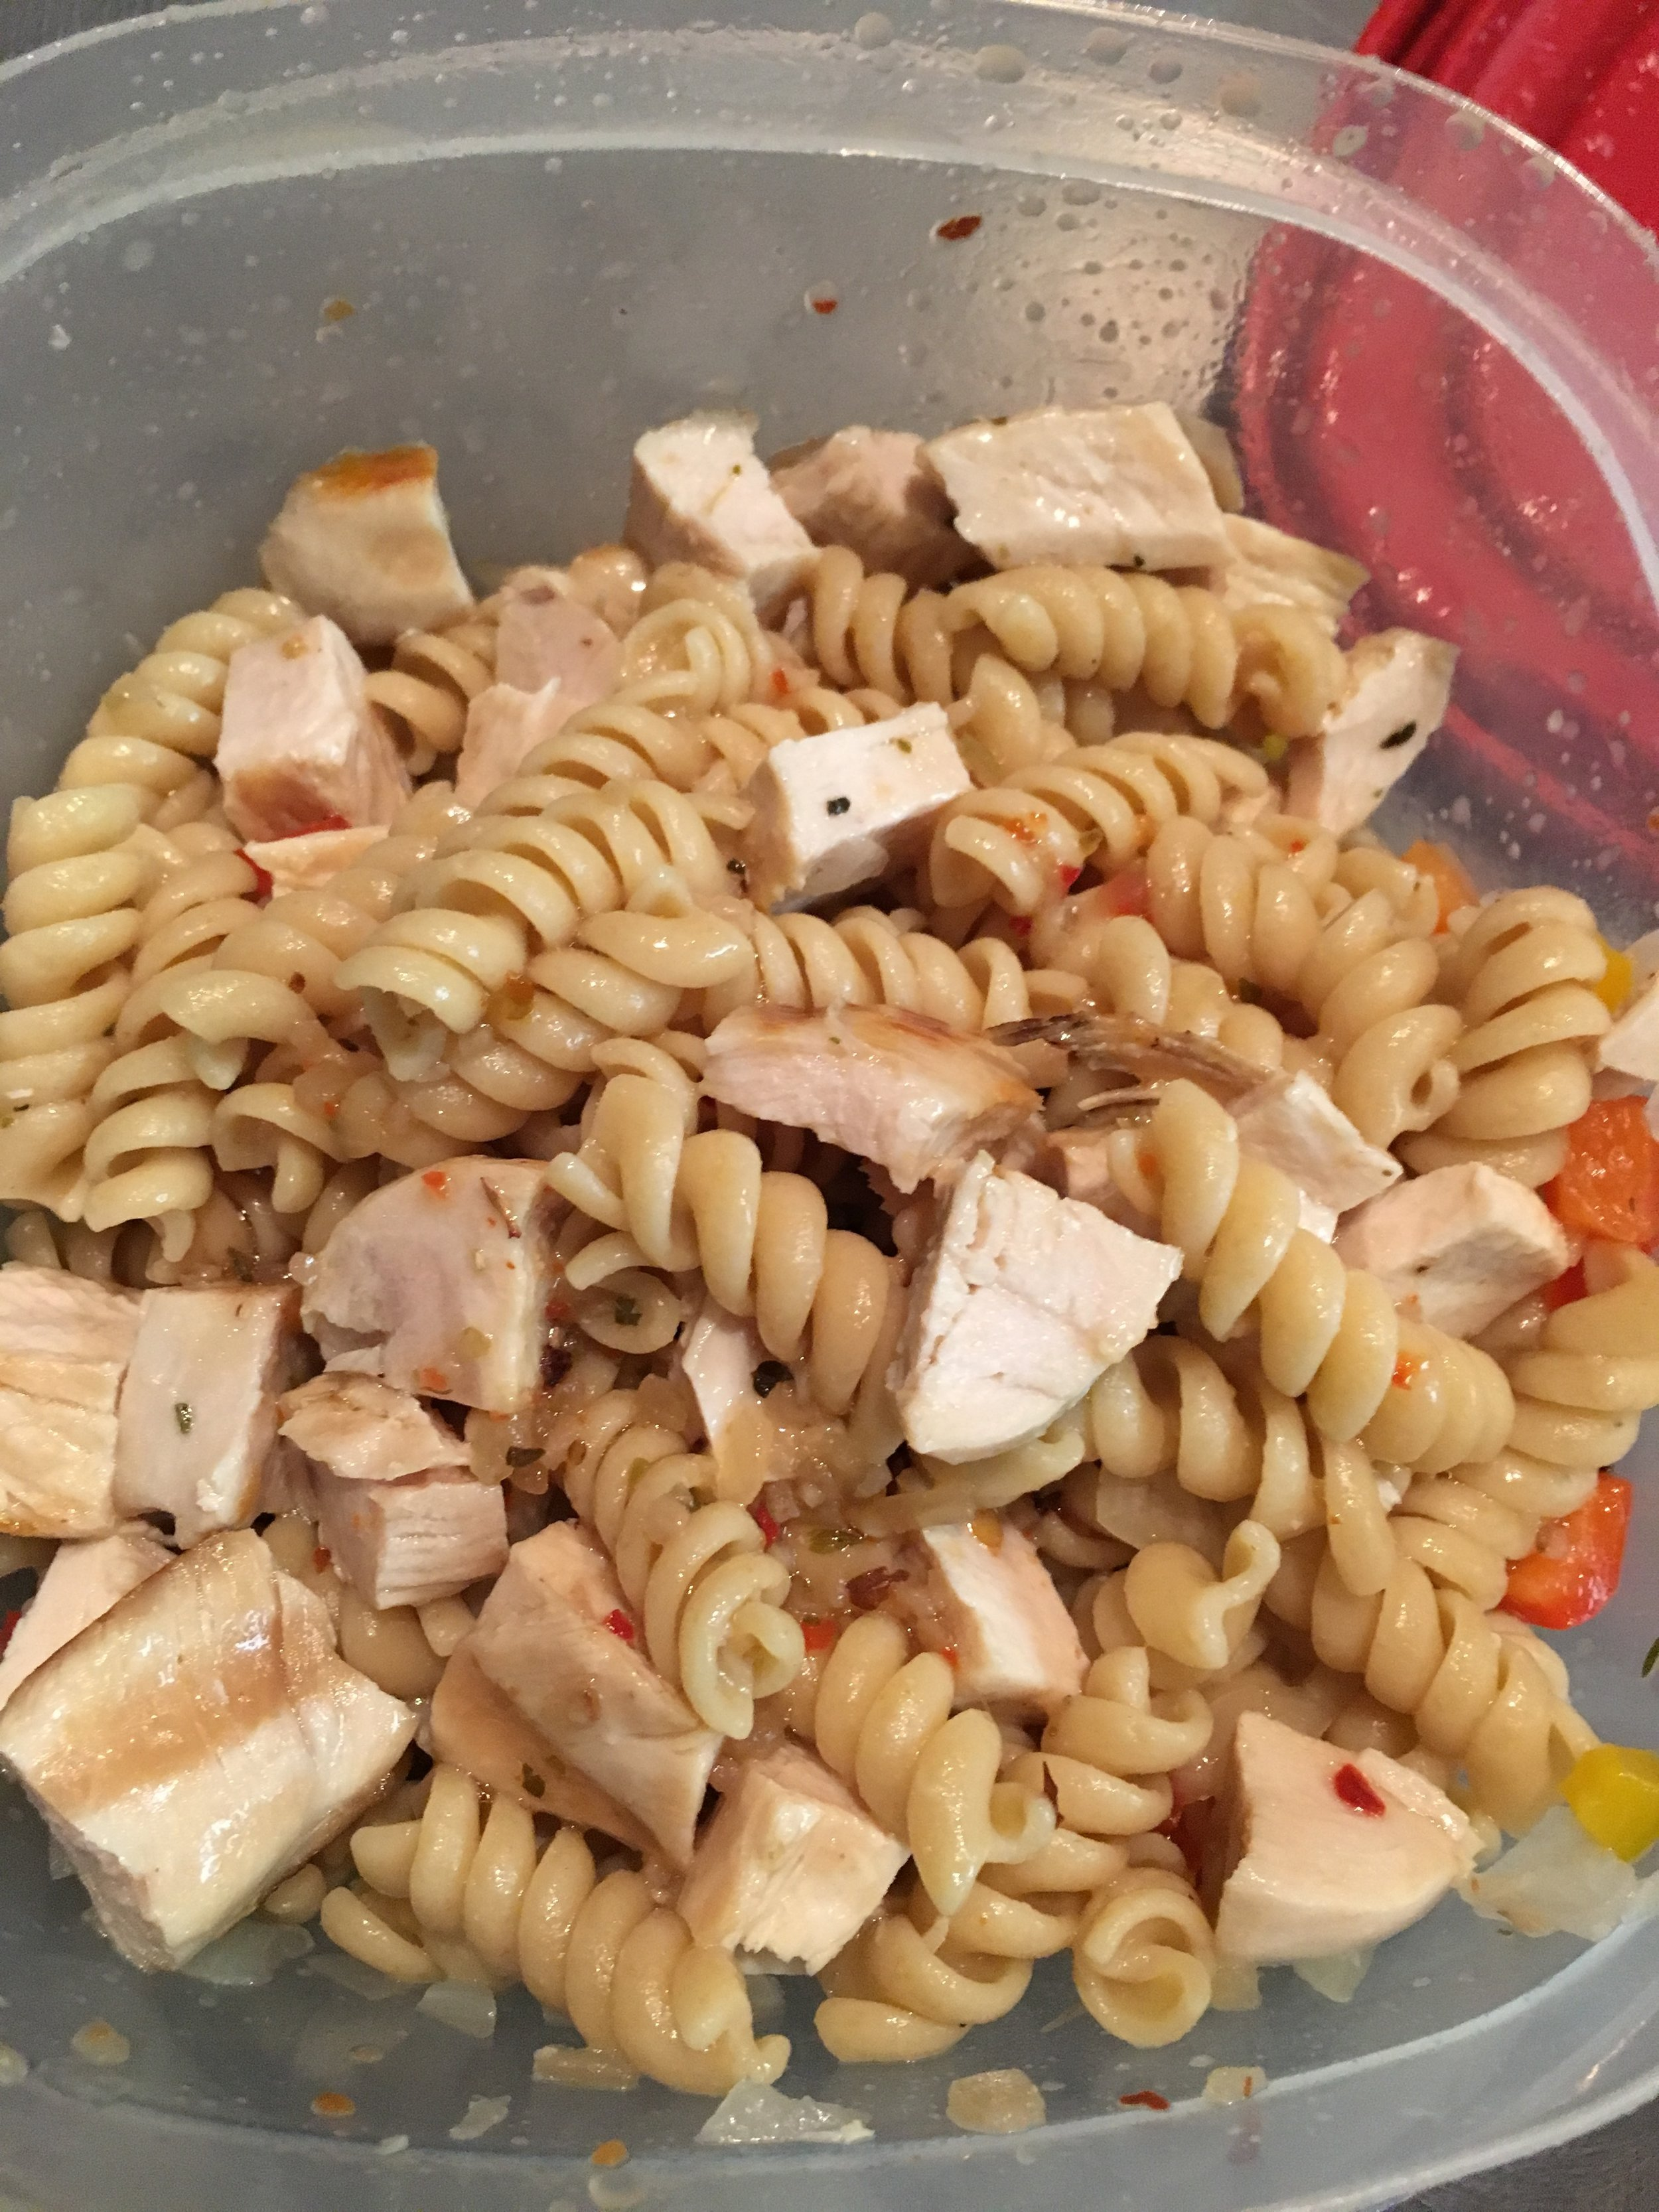 At the end of the week, I had leftover grilled chicken that was used to make a pasta salad.